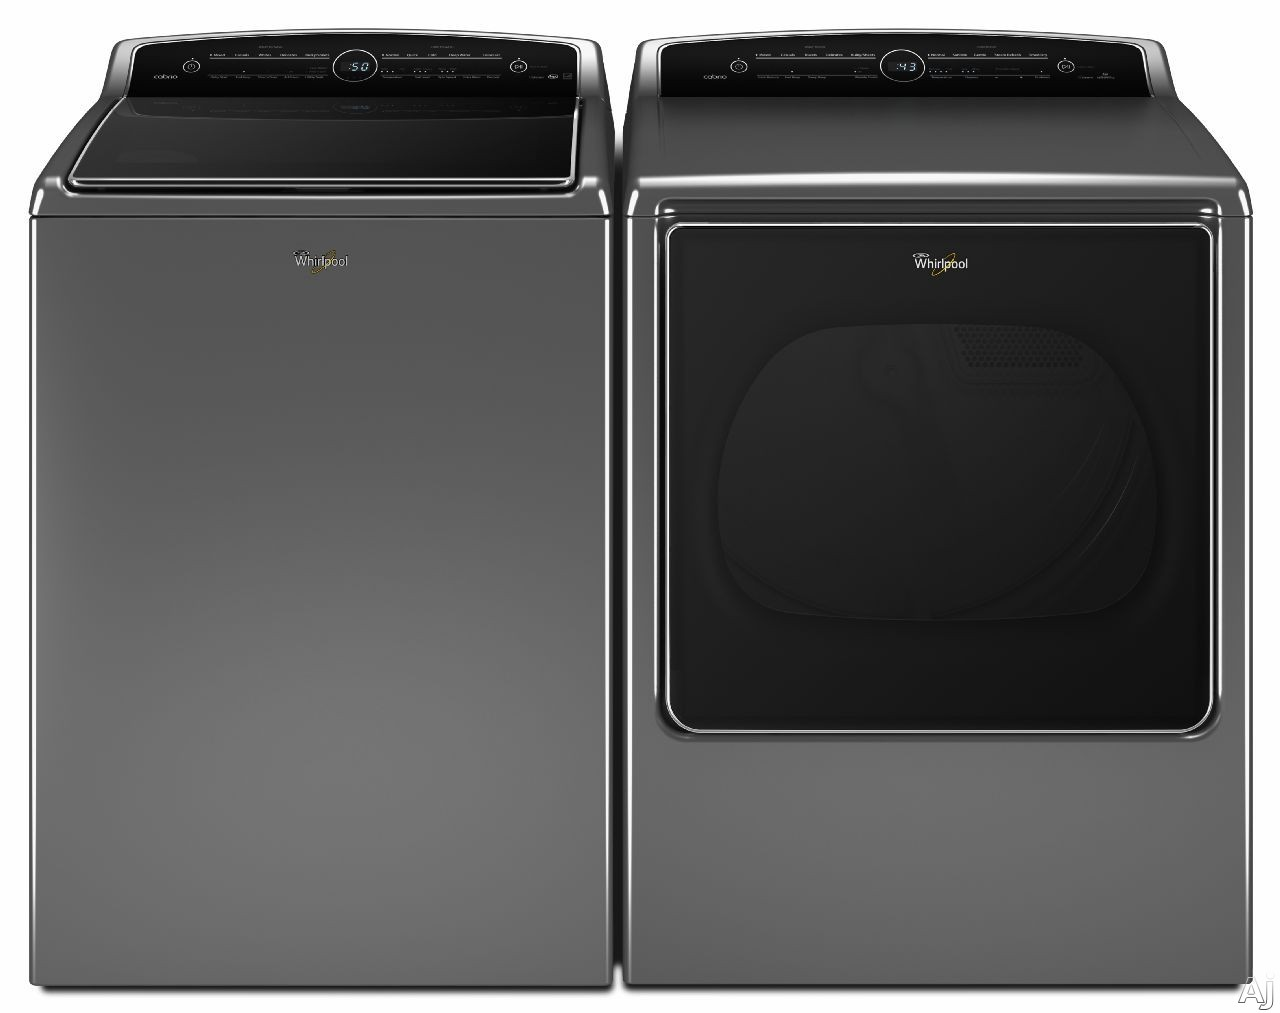 Wtw8500dc Wed8500dc 5 3 Cu Ft Whirlpool Top Load Washer